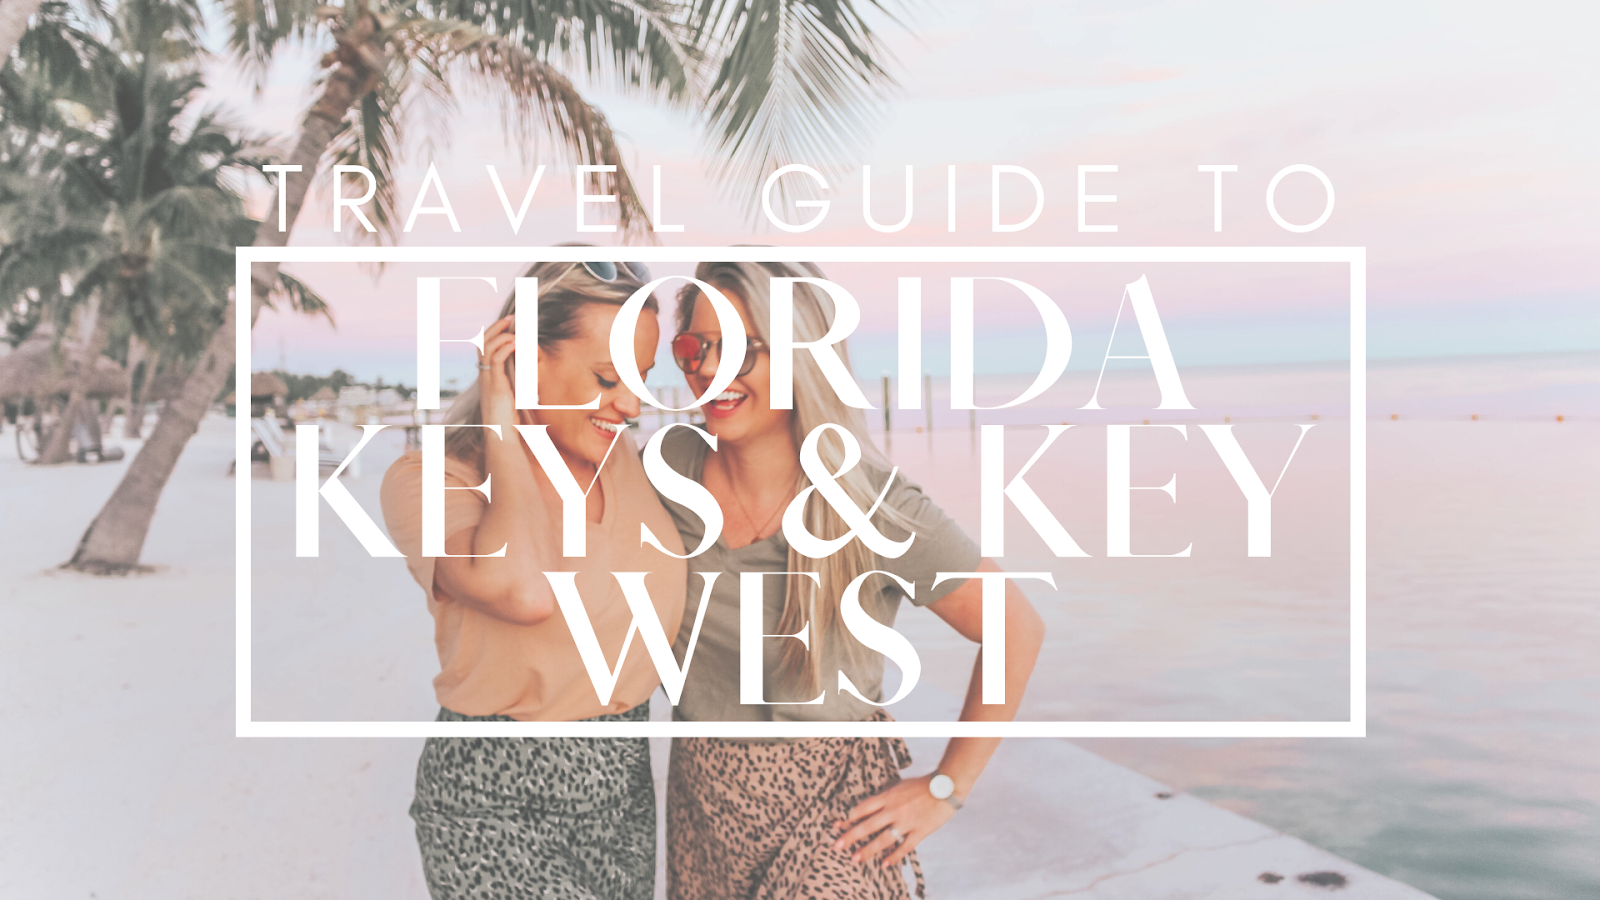 travel guide to florida keys and key west